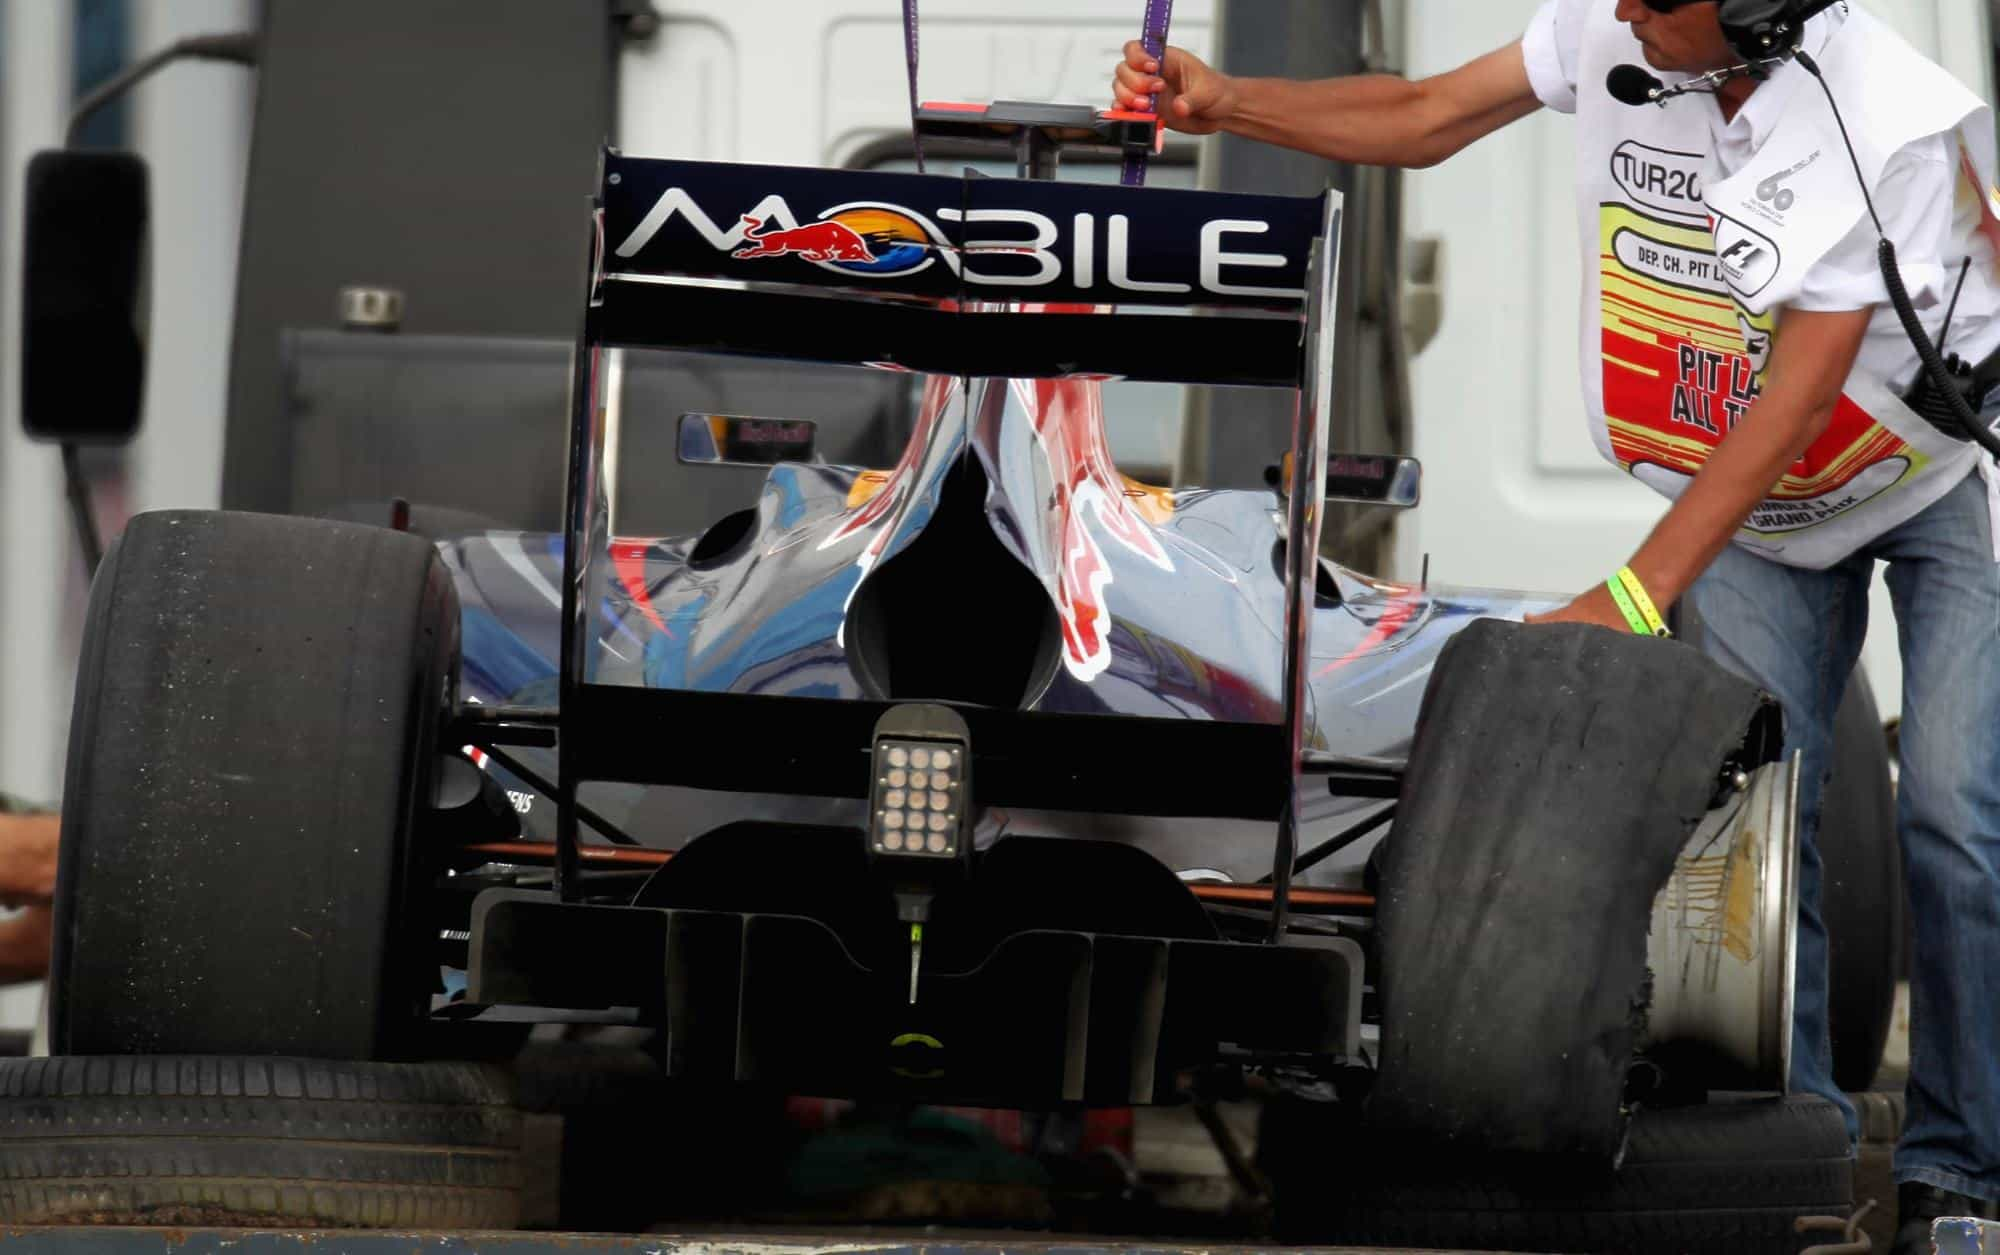 Turkish GP F1 2010 Vettel Red Bull RB10 rear end double diffuser crash Photo Red Bull